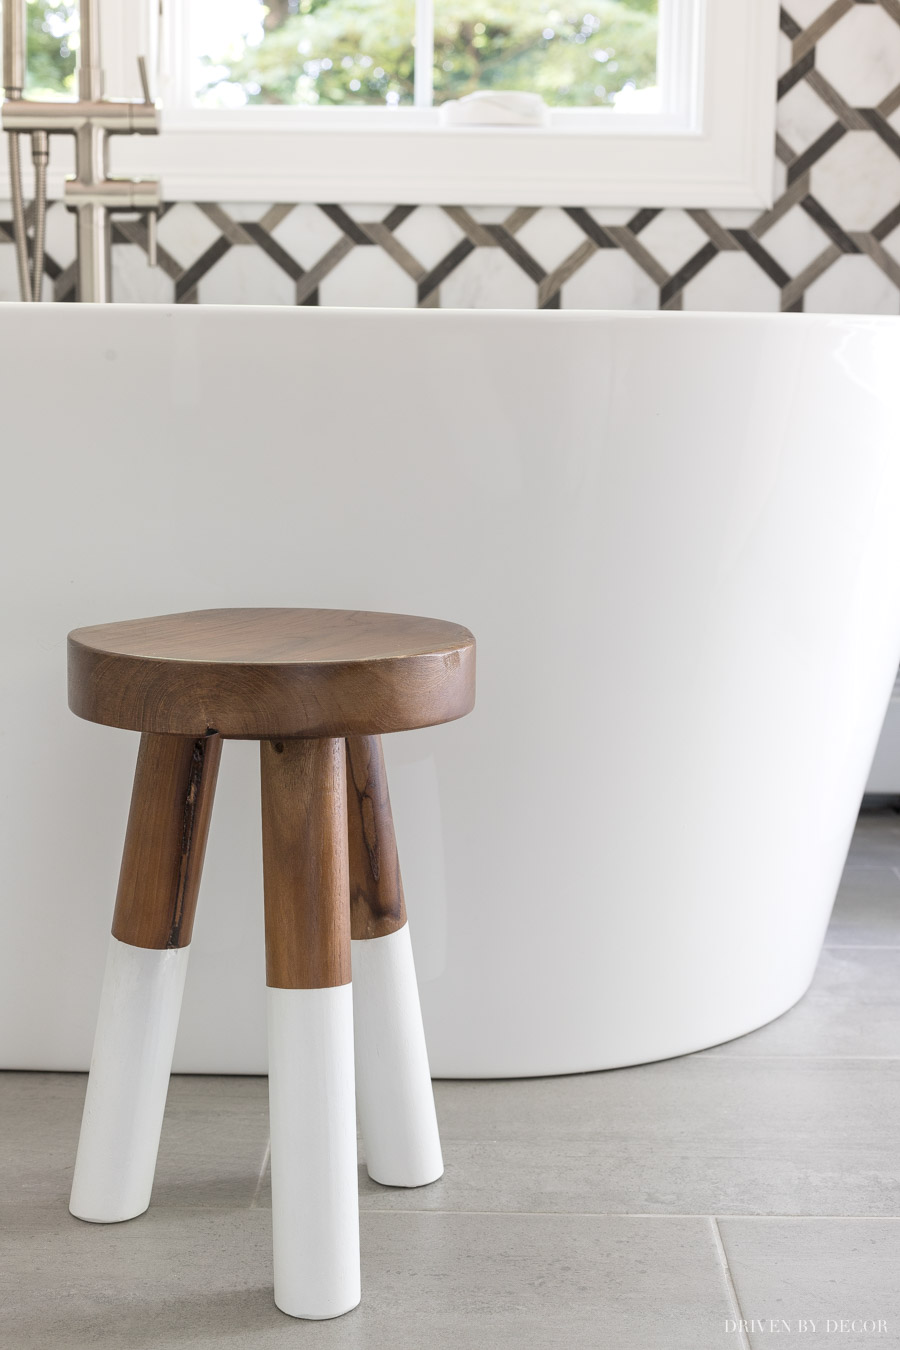 The cutest wood stool by the freestanding tub in this master bathroom